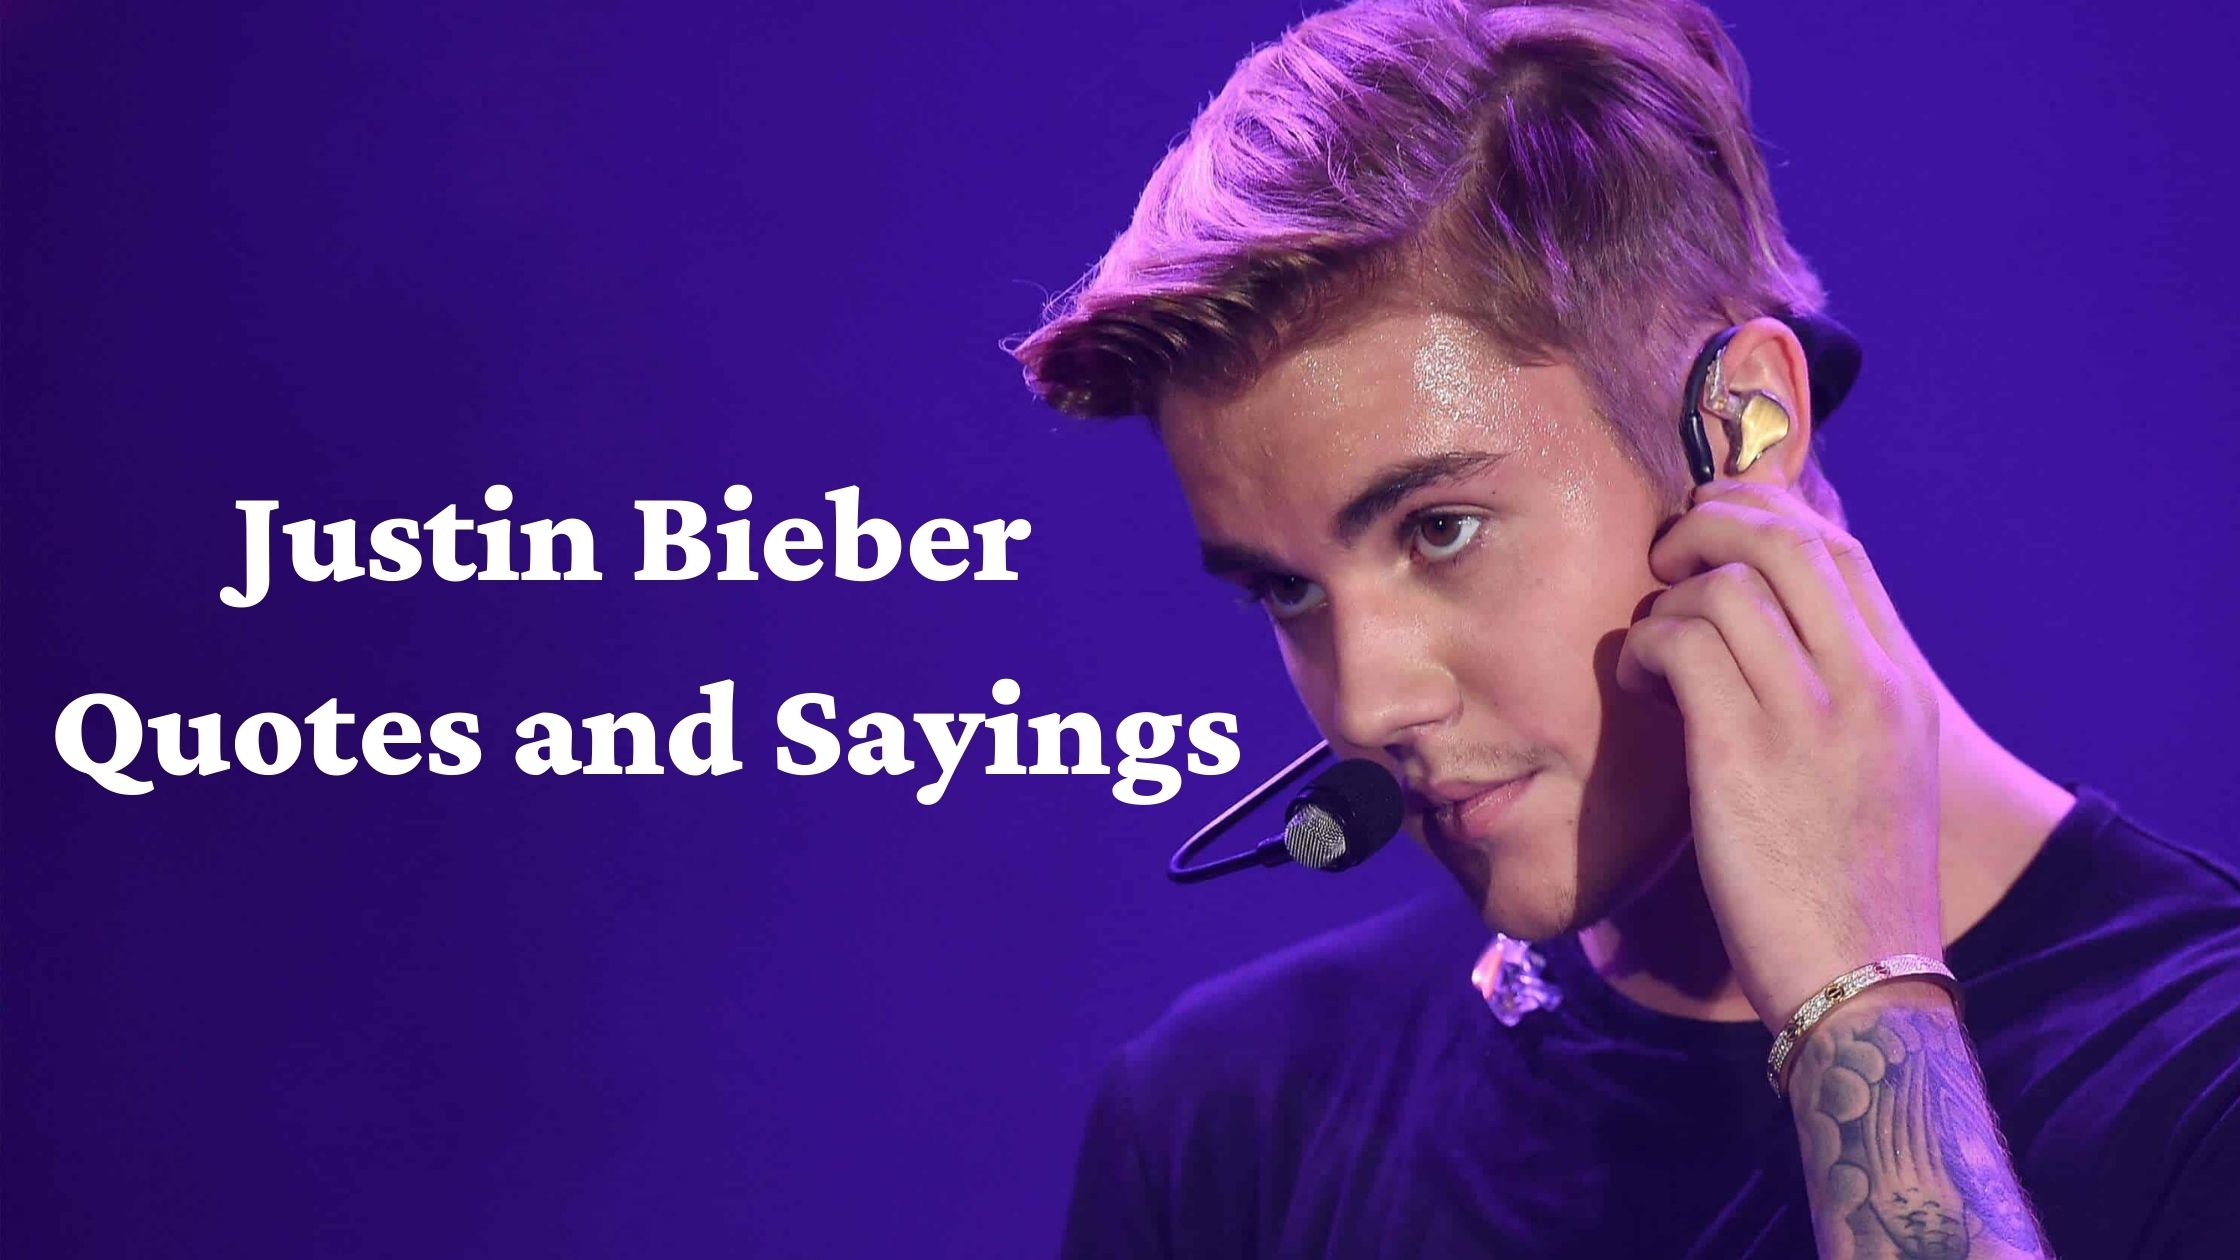 Best Justin Bieber Love Quotes and Sayings